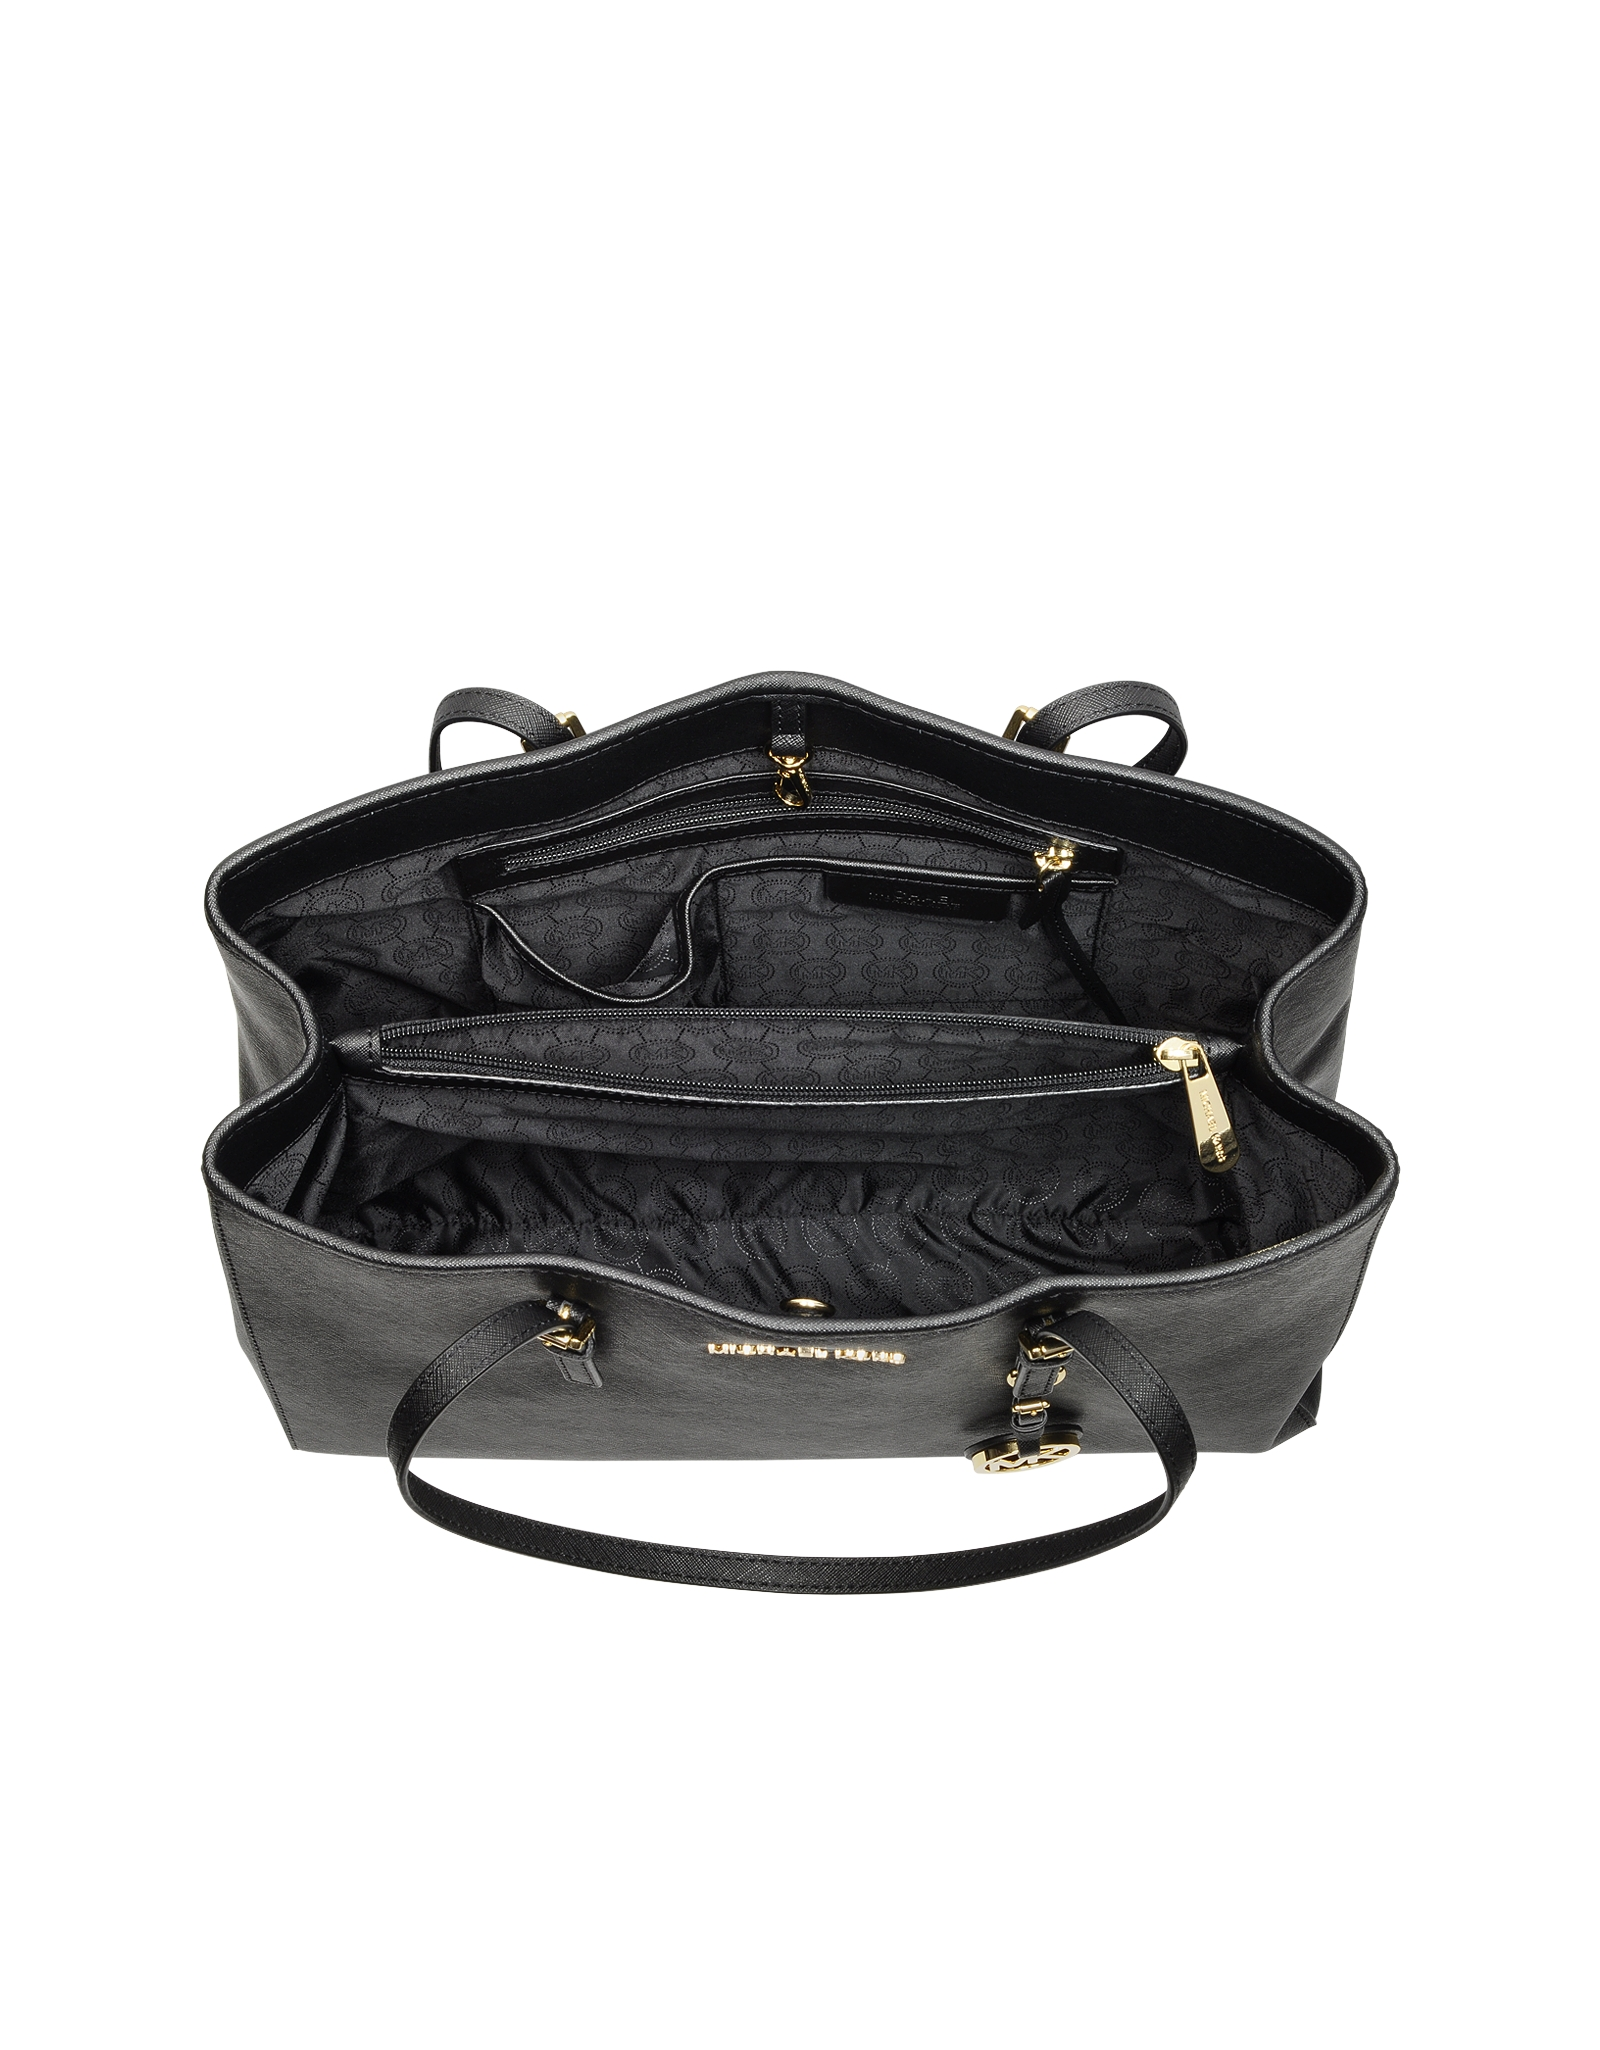 5d0ed8507daf Michael Kors Jet Set Travel Saffiano Leather Tote in Black - Lyst